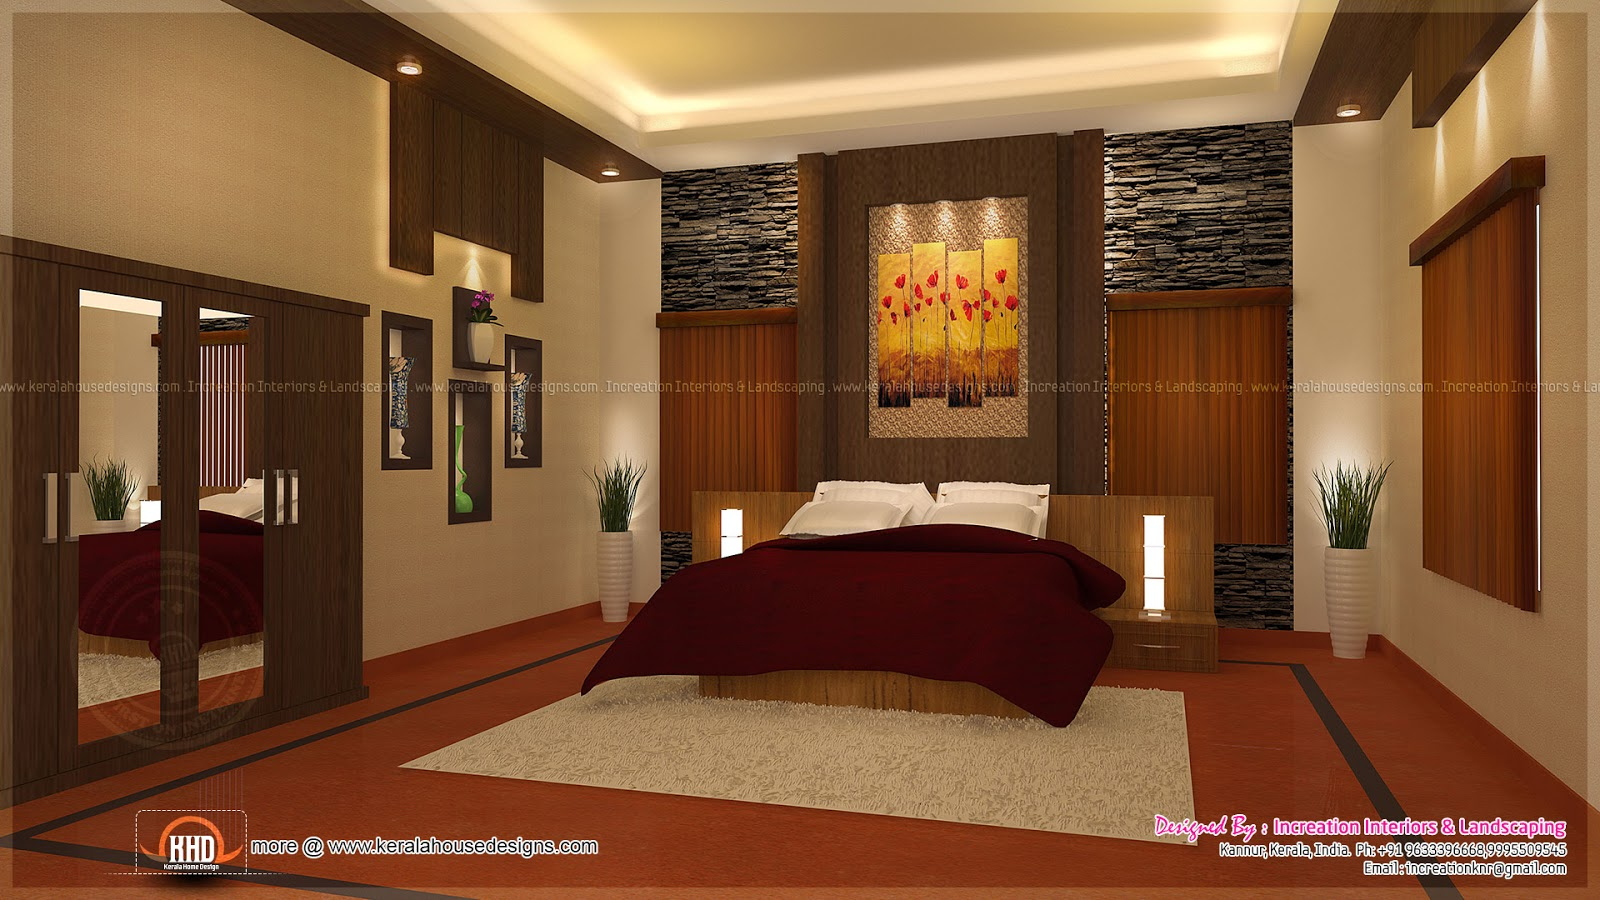 House interior ideas in 3d rendering kerala home design for Home interior ideas